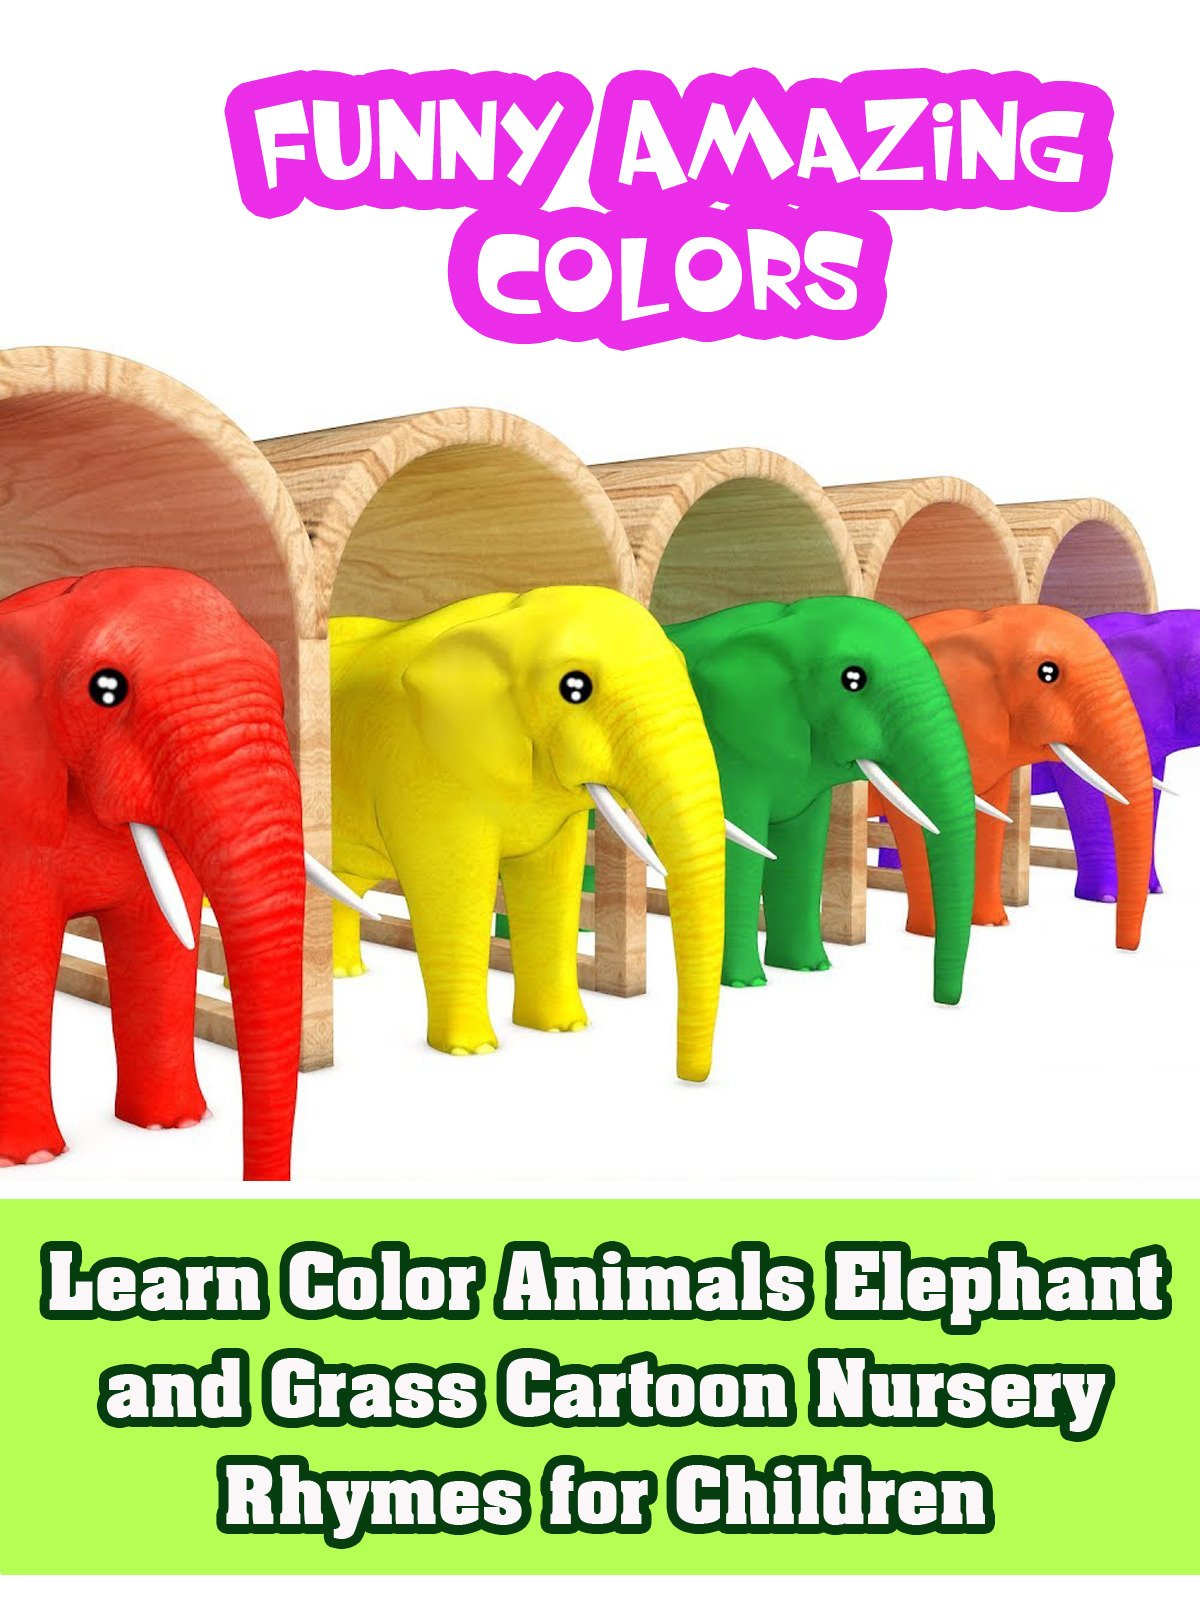 Learn Color Animals Elephant and Grass Cartoon Nursery Rhymes for Children